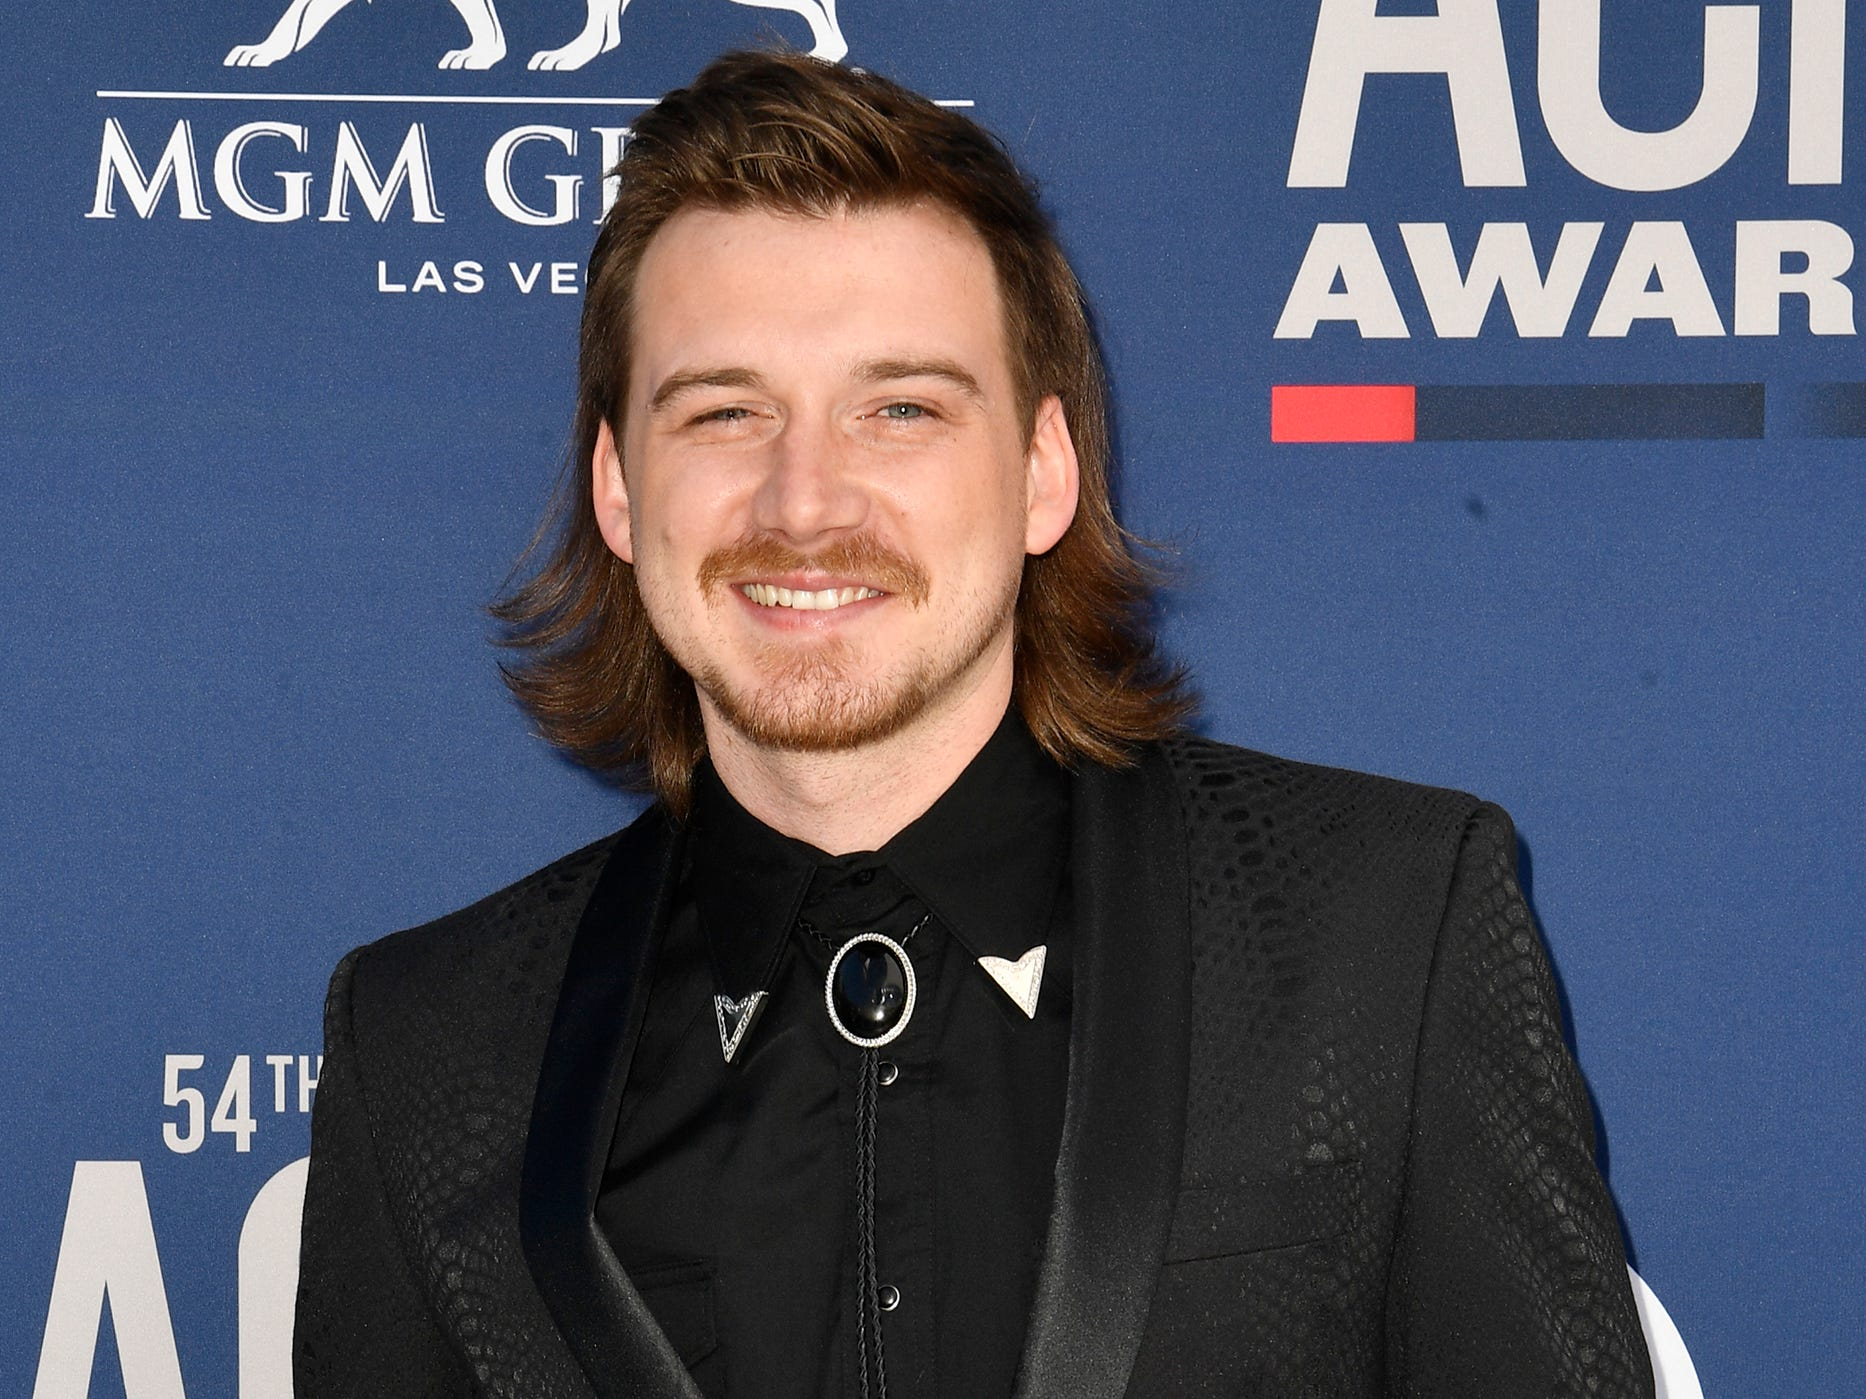 Morgan Wallen walks the red carpet at the 54TH Academy of Country Music Awards Sunday, April 7, 2019, in Las Vegas, Nev.